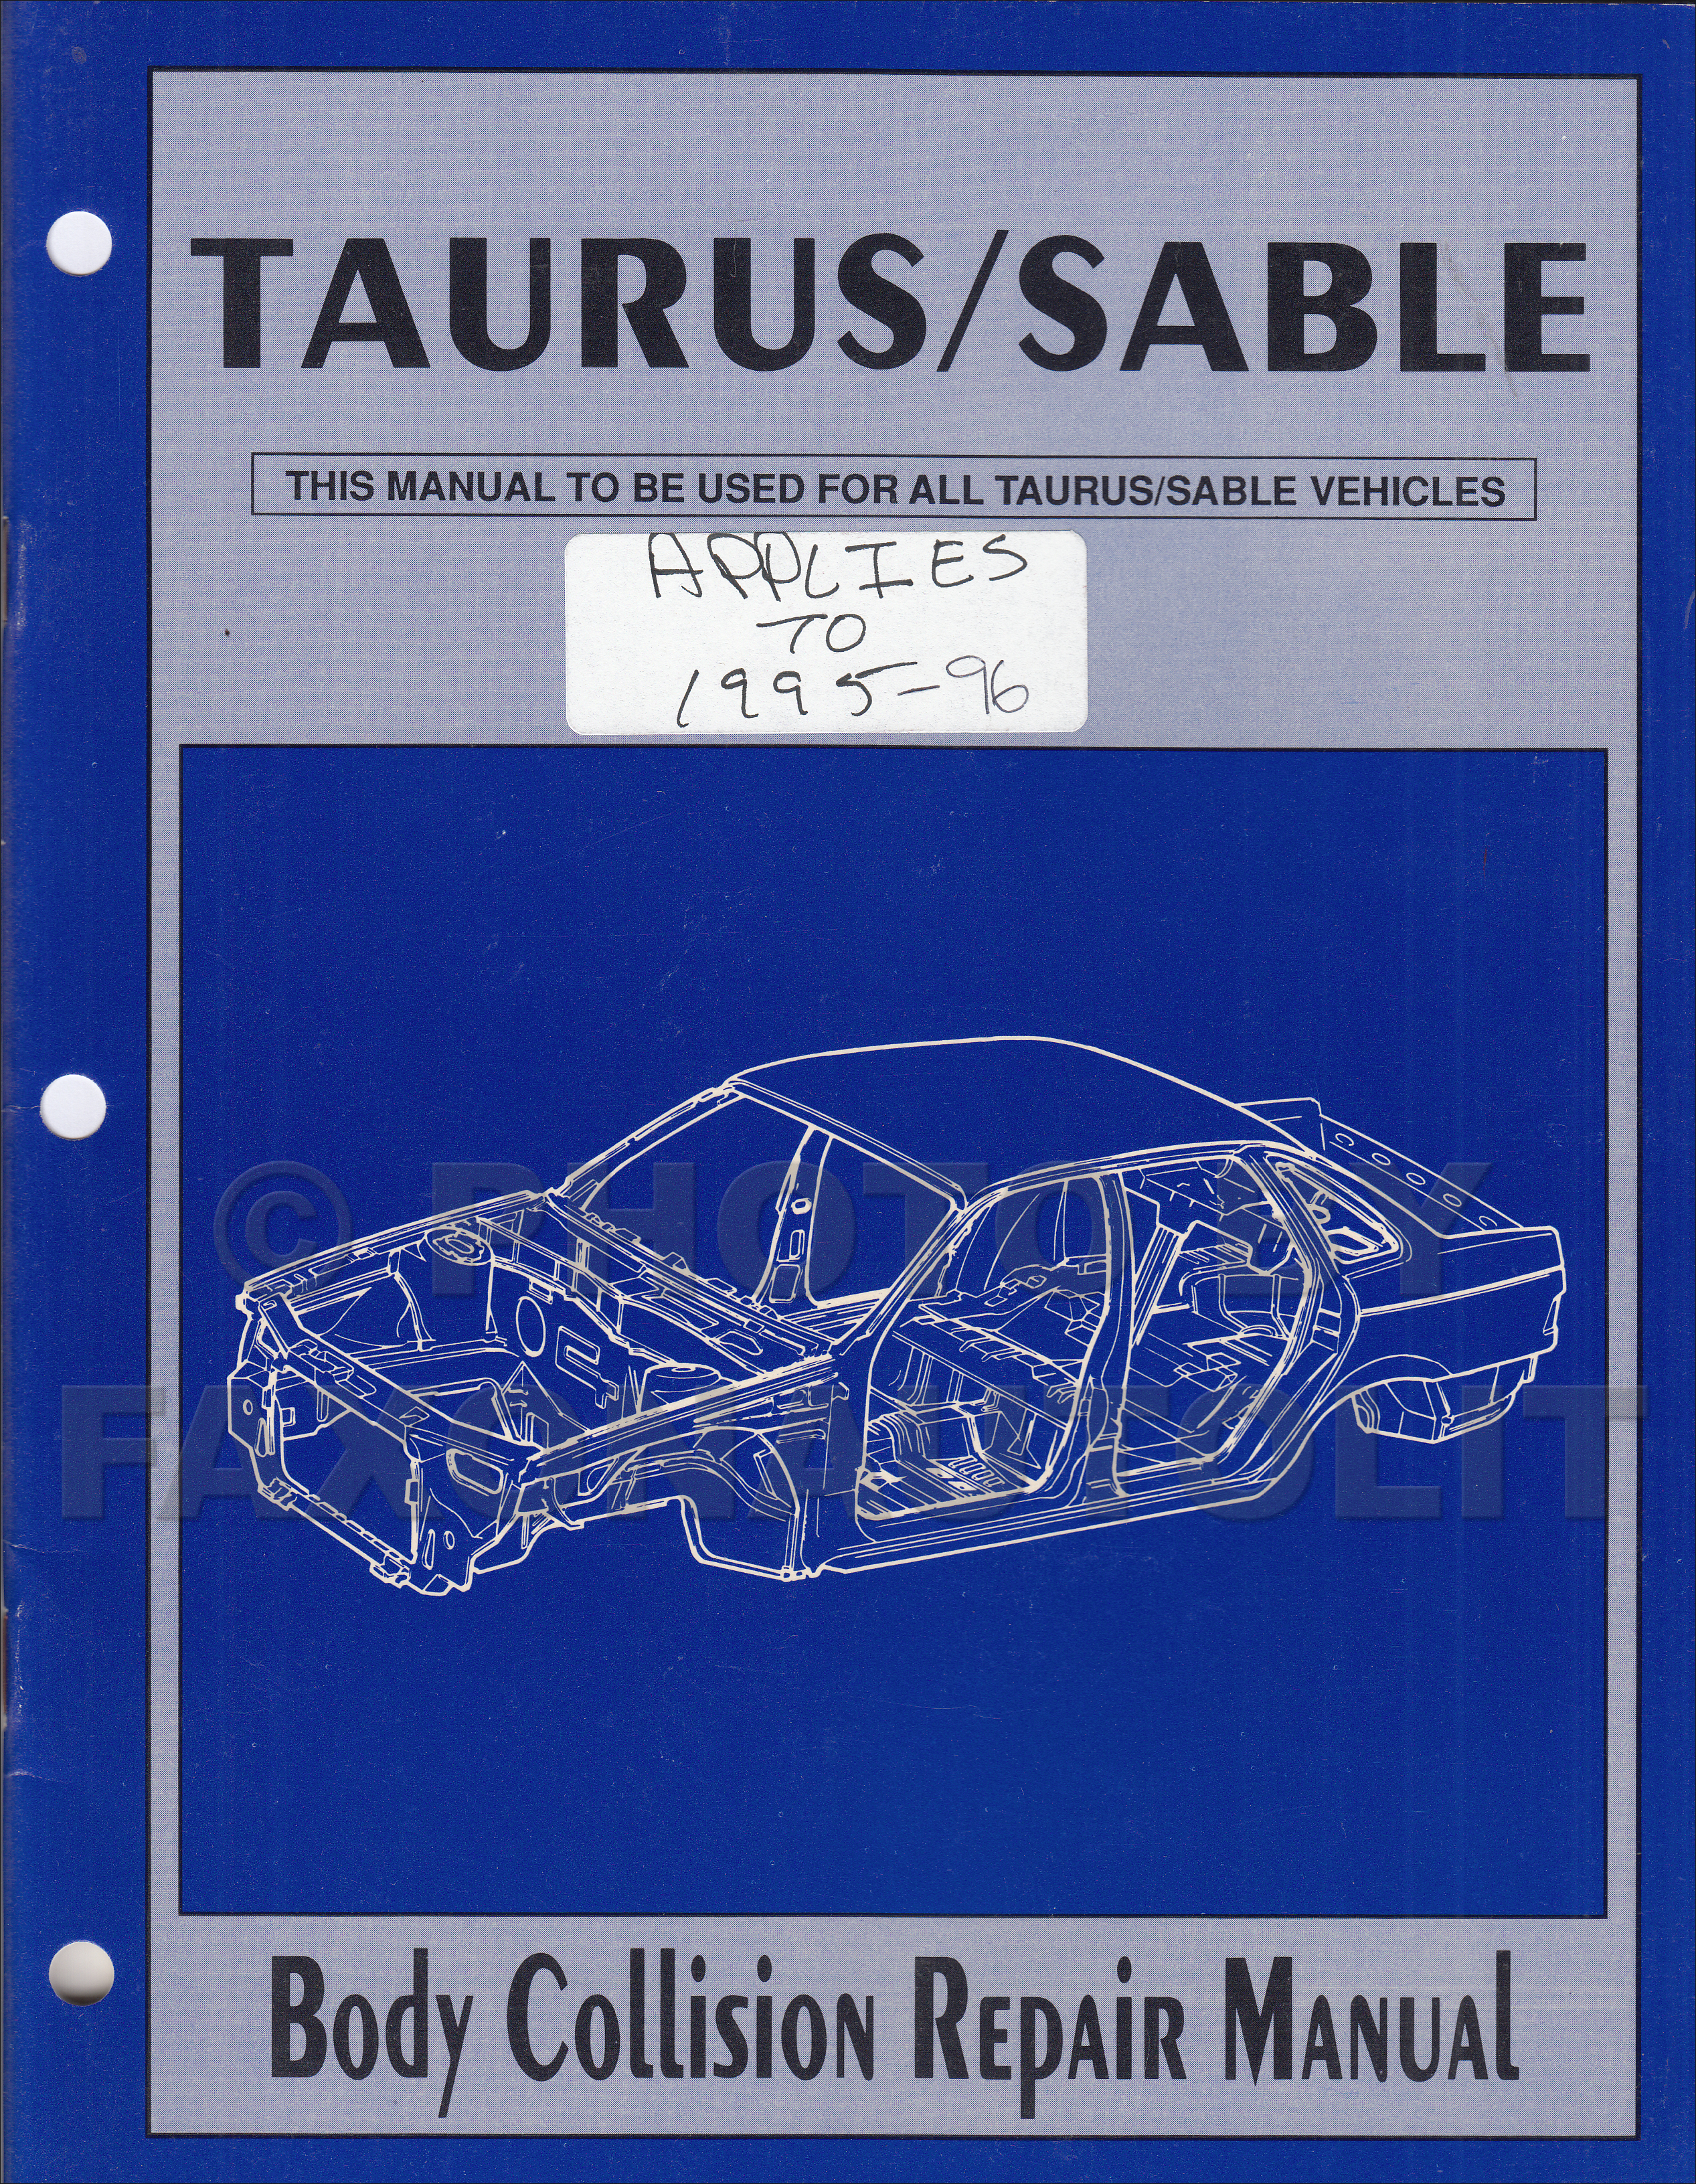 ... Ford Taurus/Mercury Sable Body Collision Repair Shop Manual Original.  2002-2006 Toyota Camry Body Collision Repair Manual Original